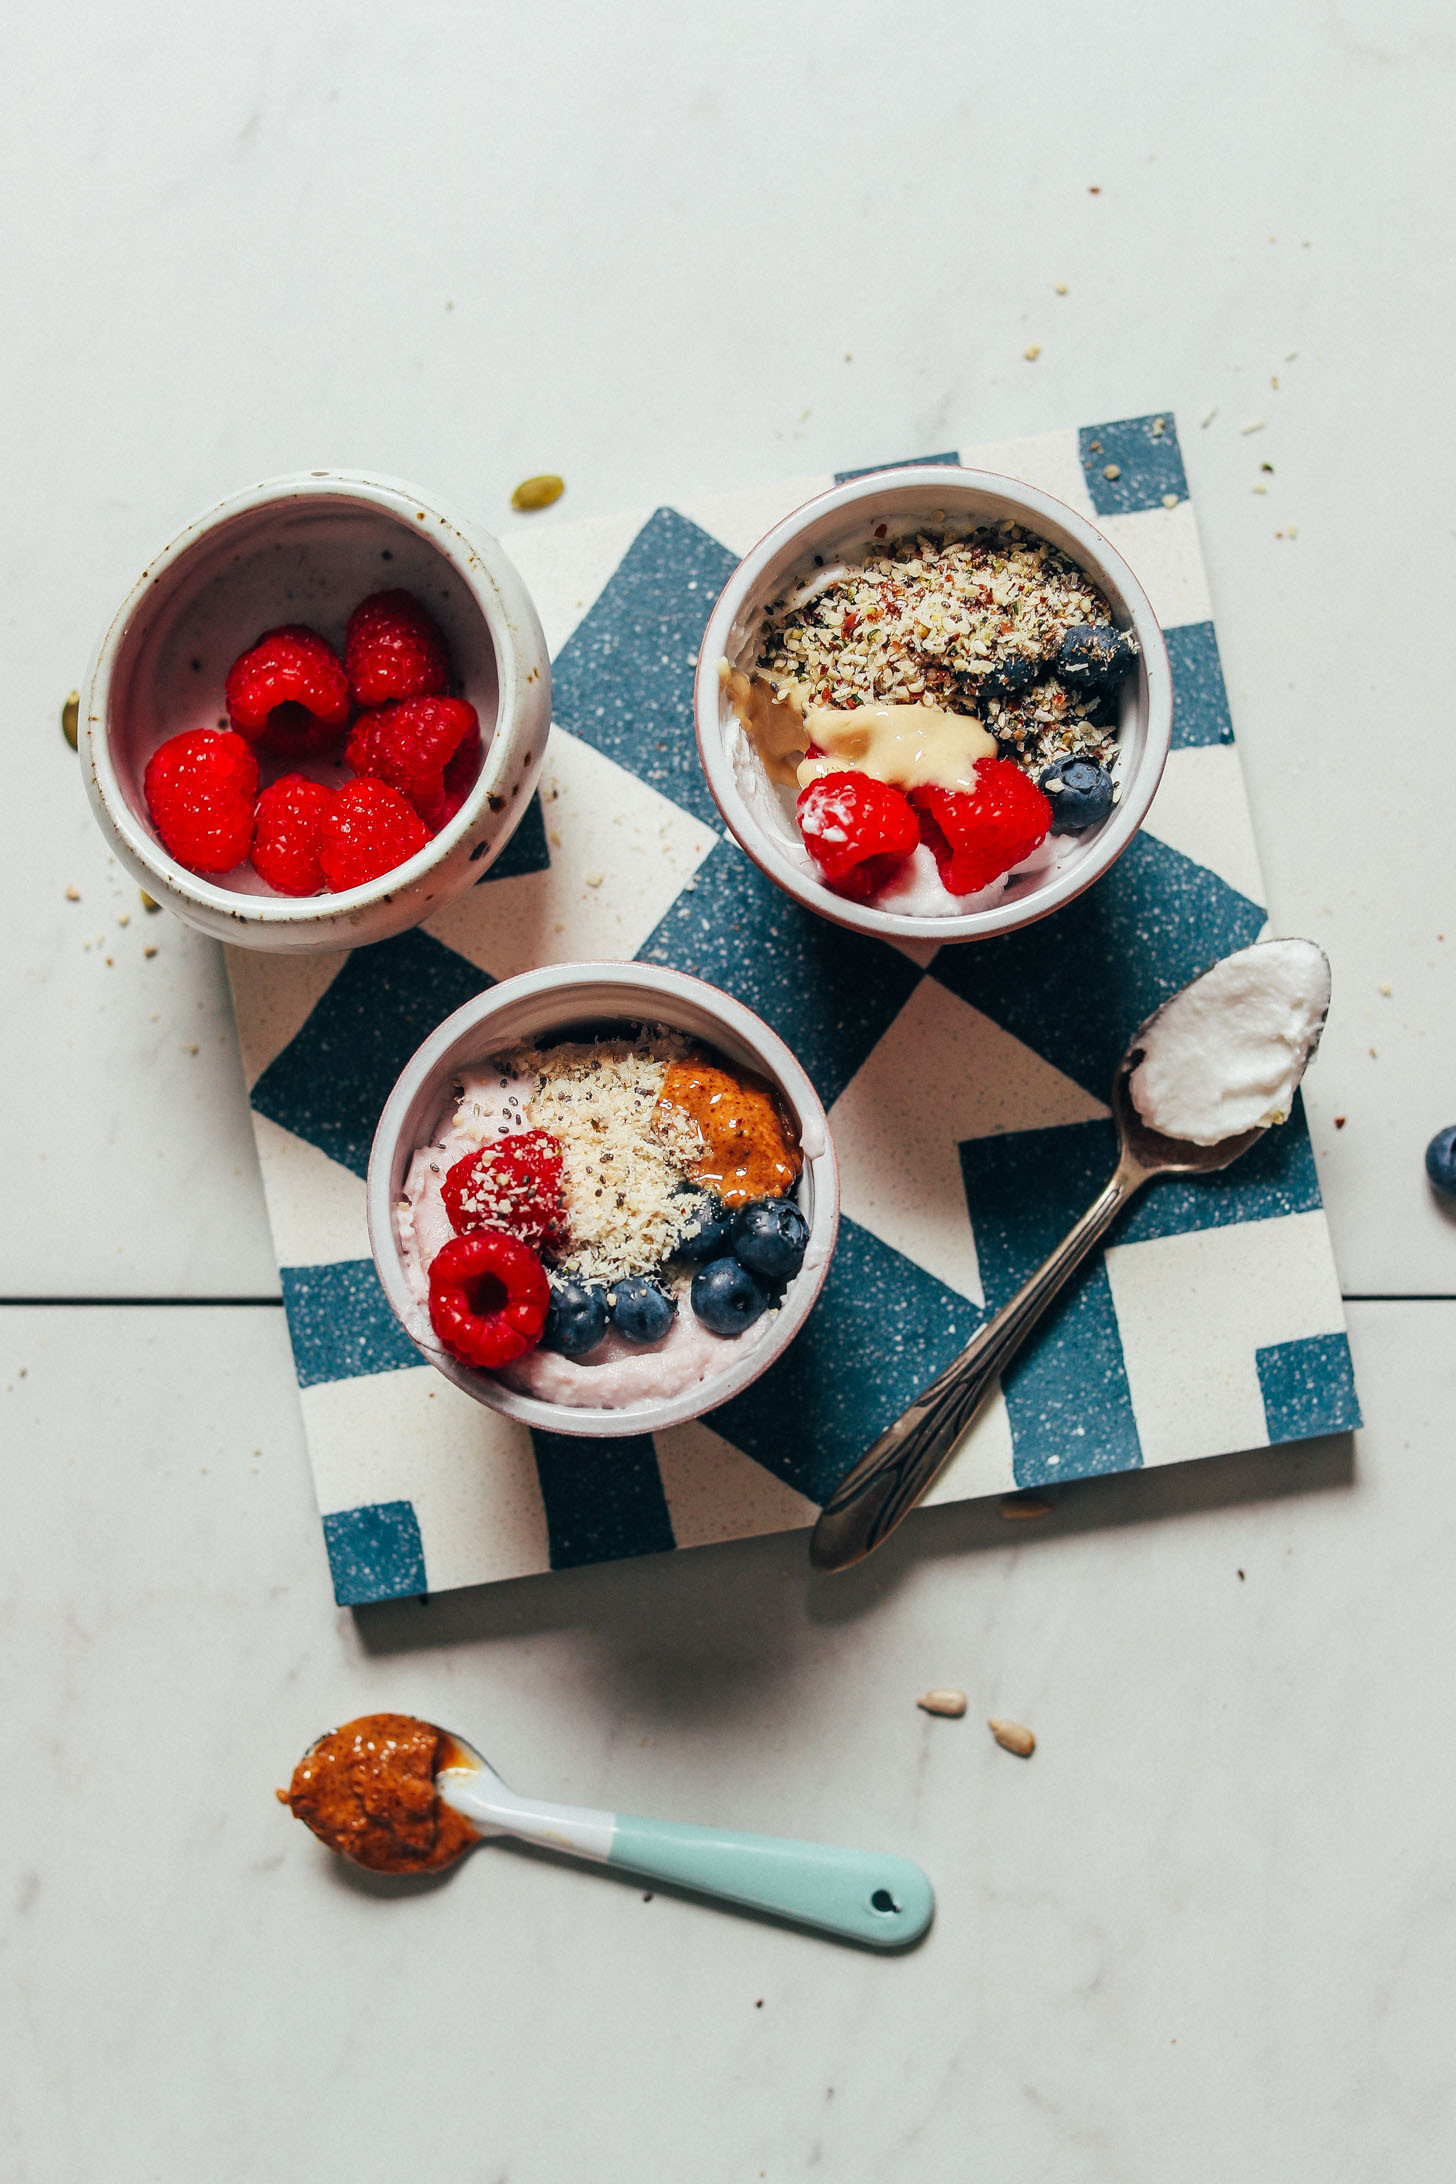 Bowls of dairy-free yogurt with fruit to show a recipe for how to use seed cycling mixes